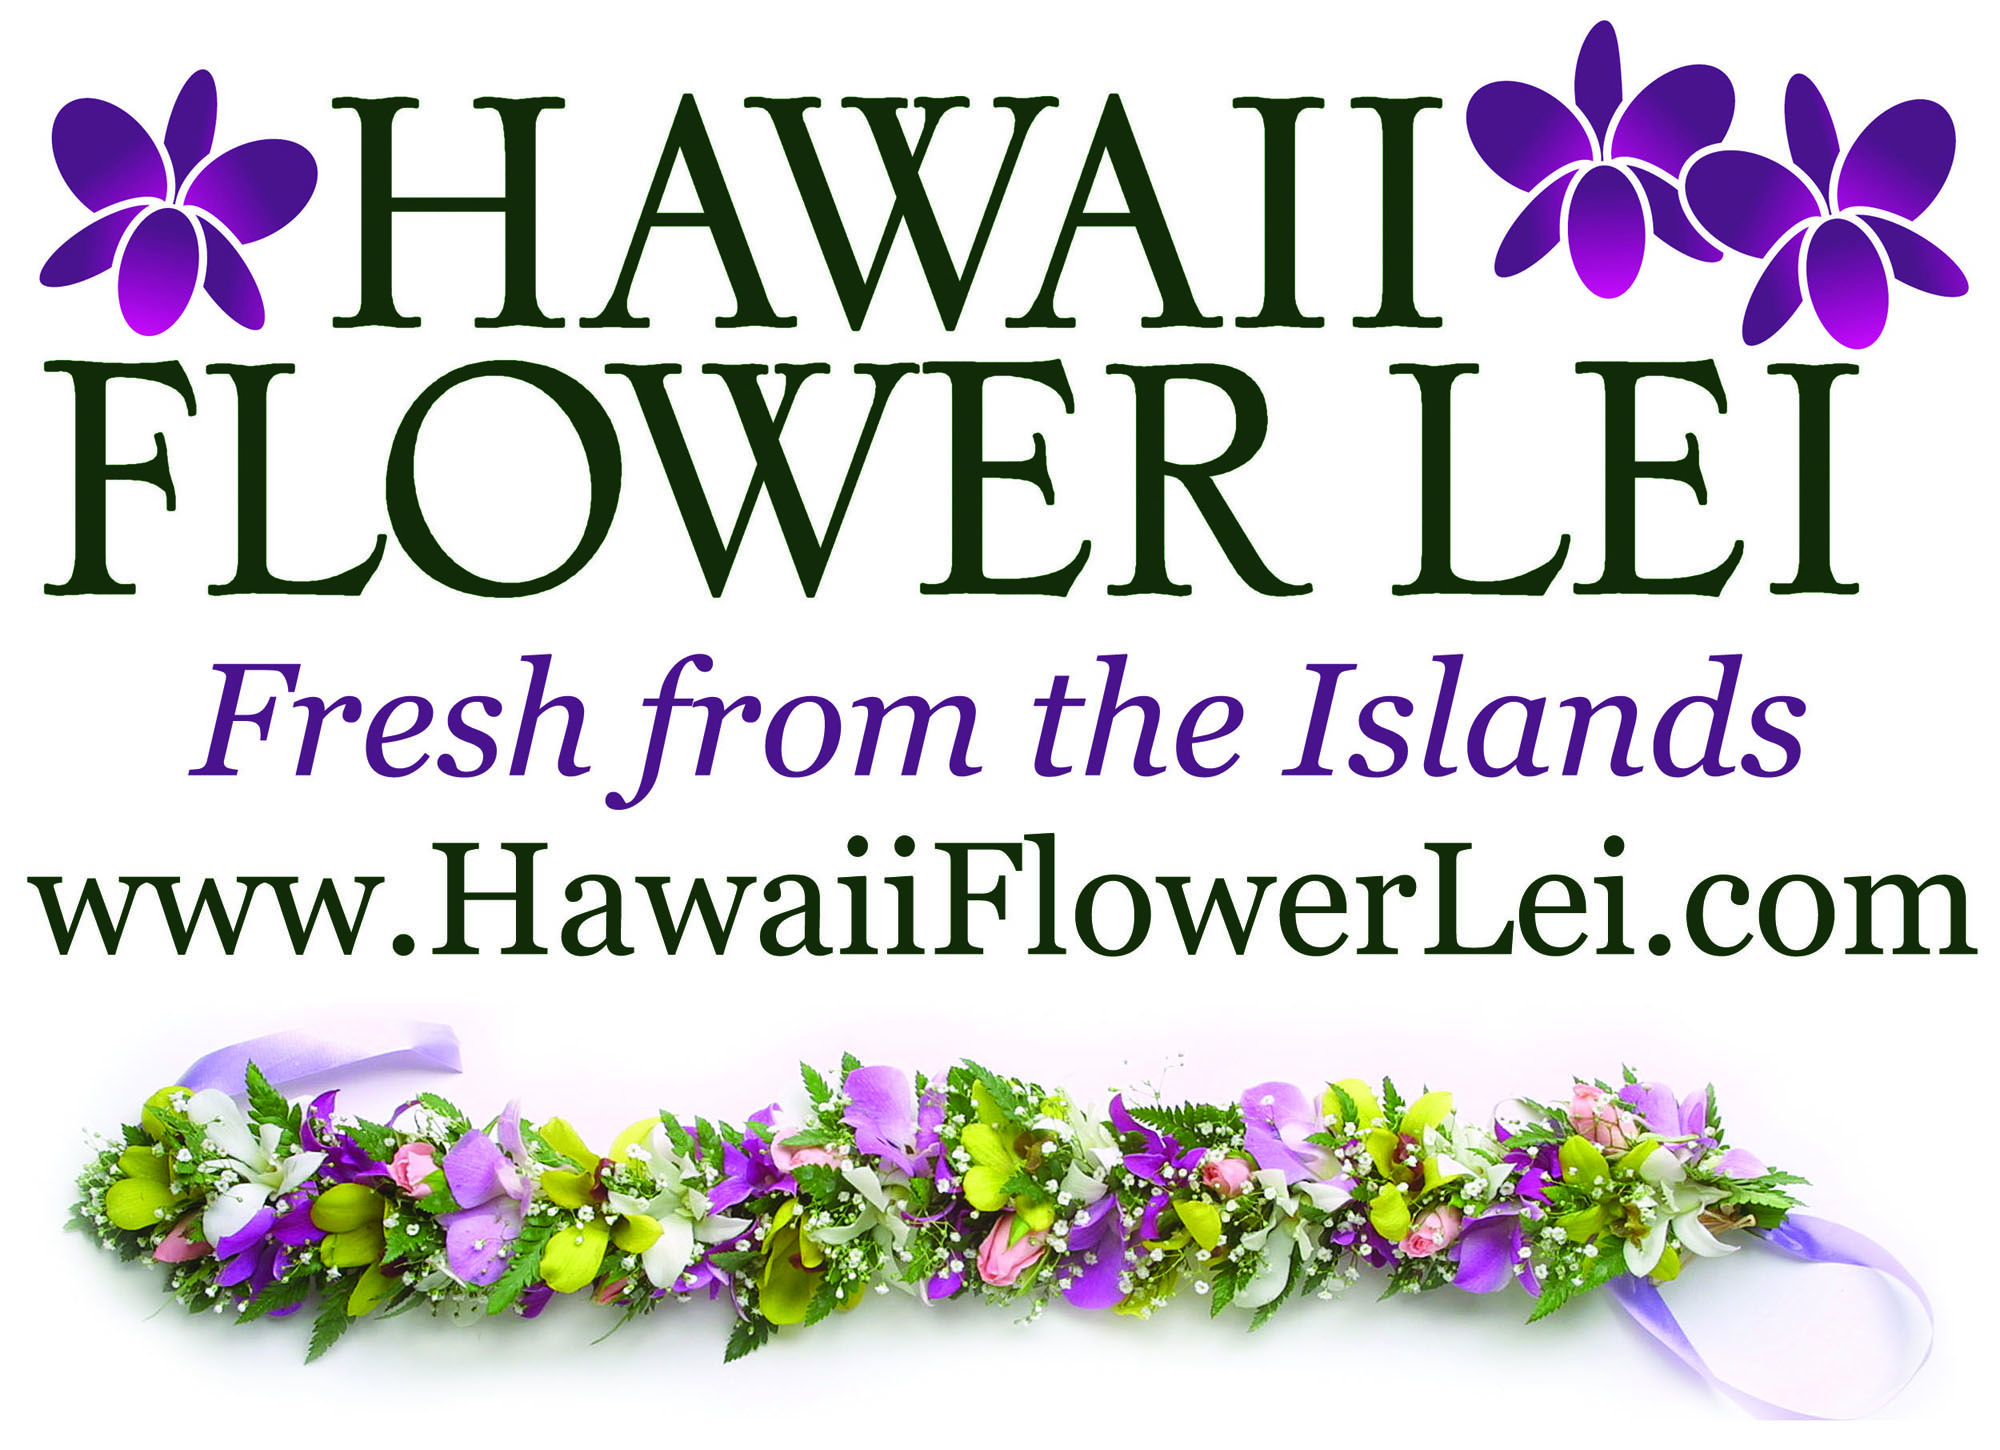 Hawaii flower lei launches new mobile friendly website today izmirmasajfo